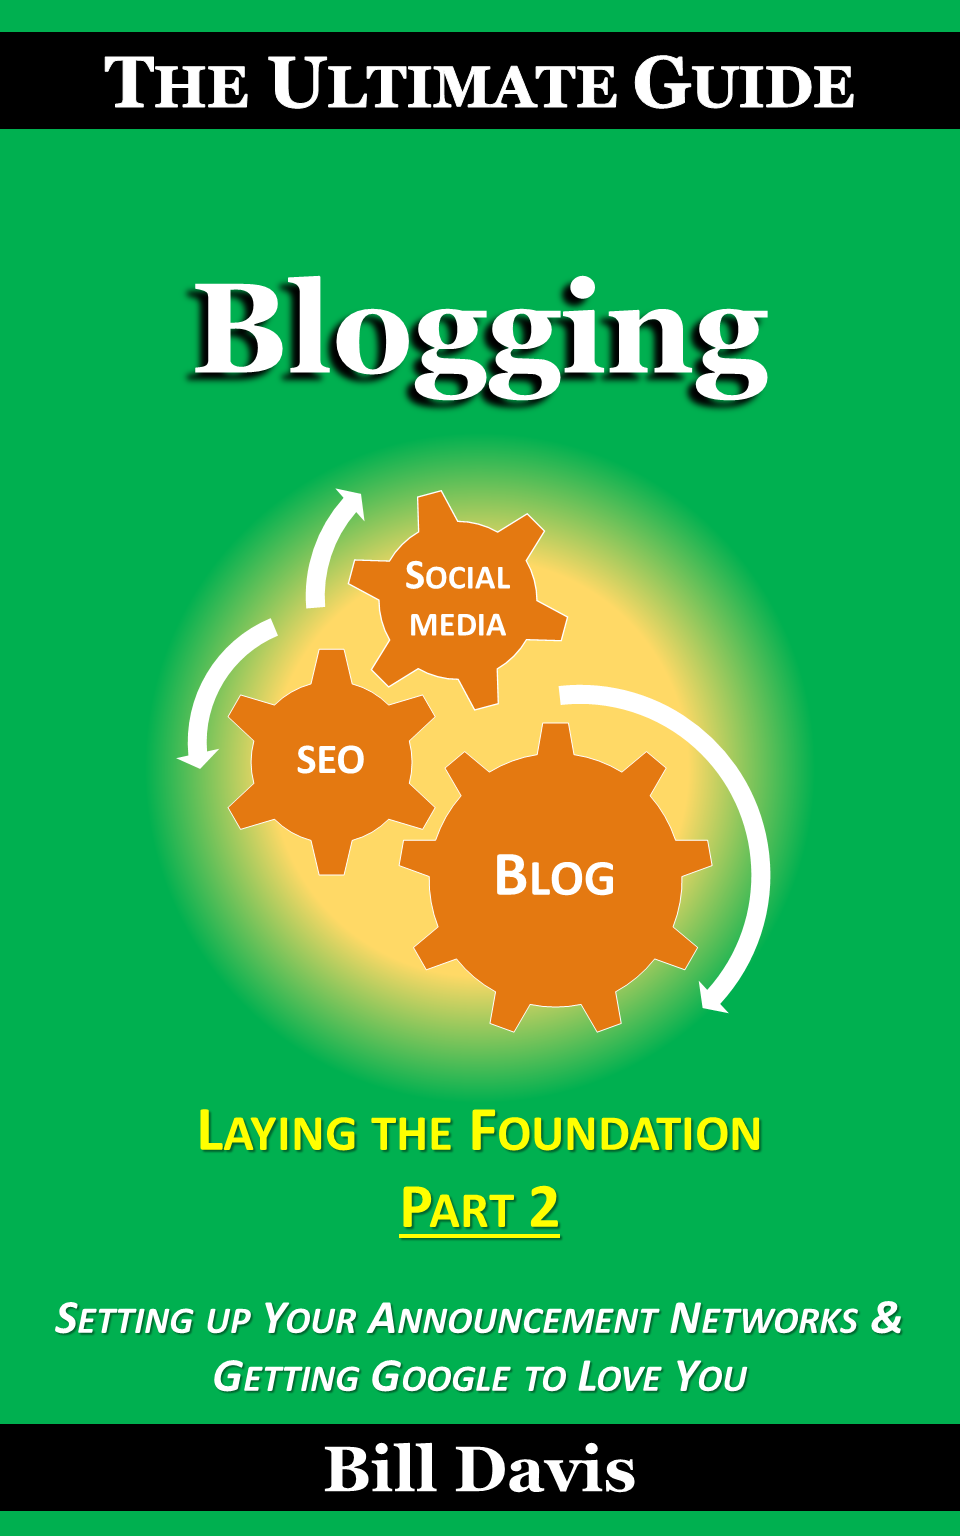 The Ultimate Guide to Blogging Laying the Foundation Part 1